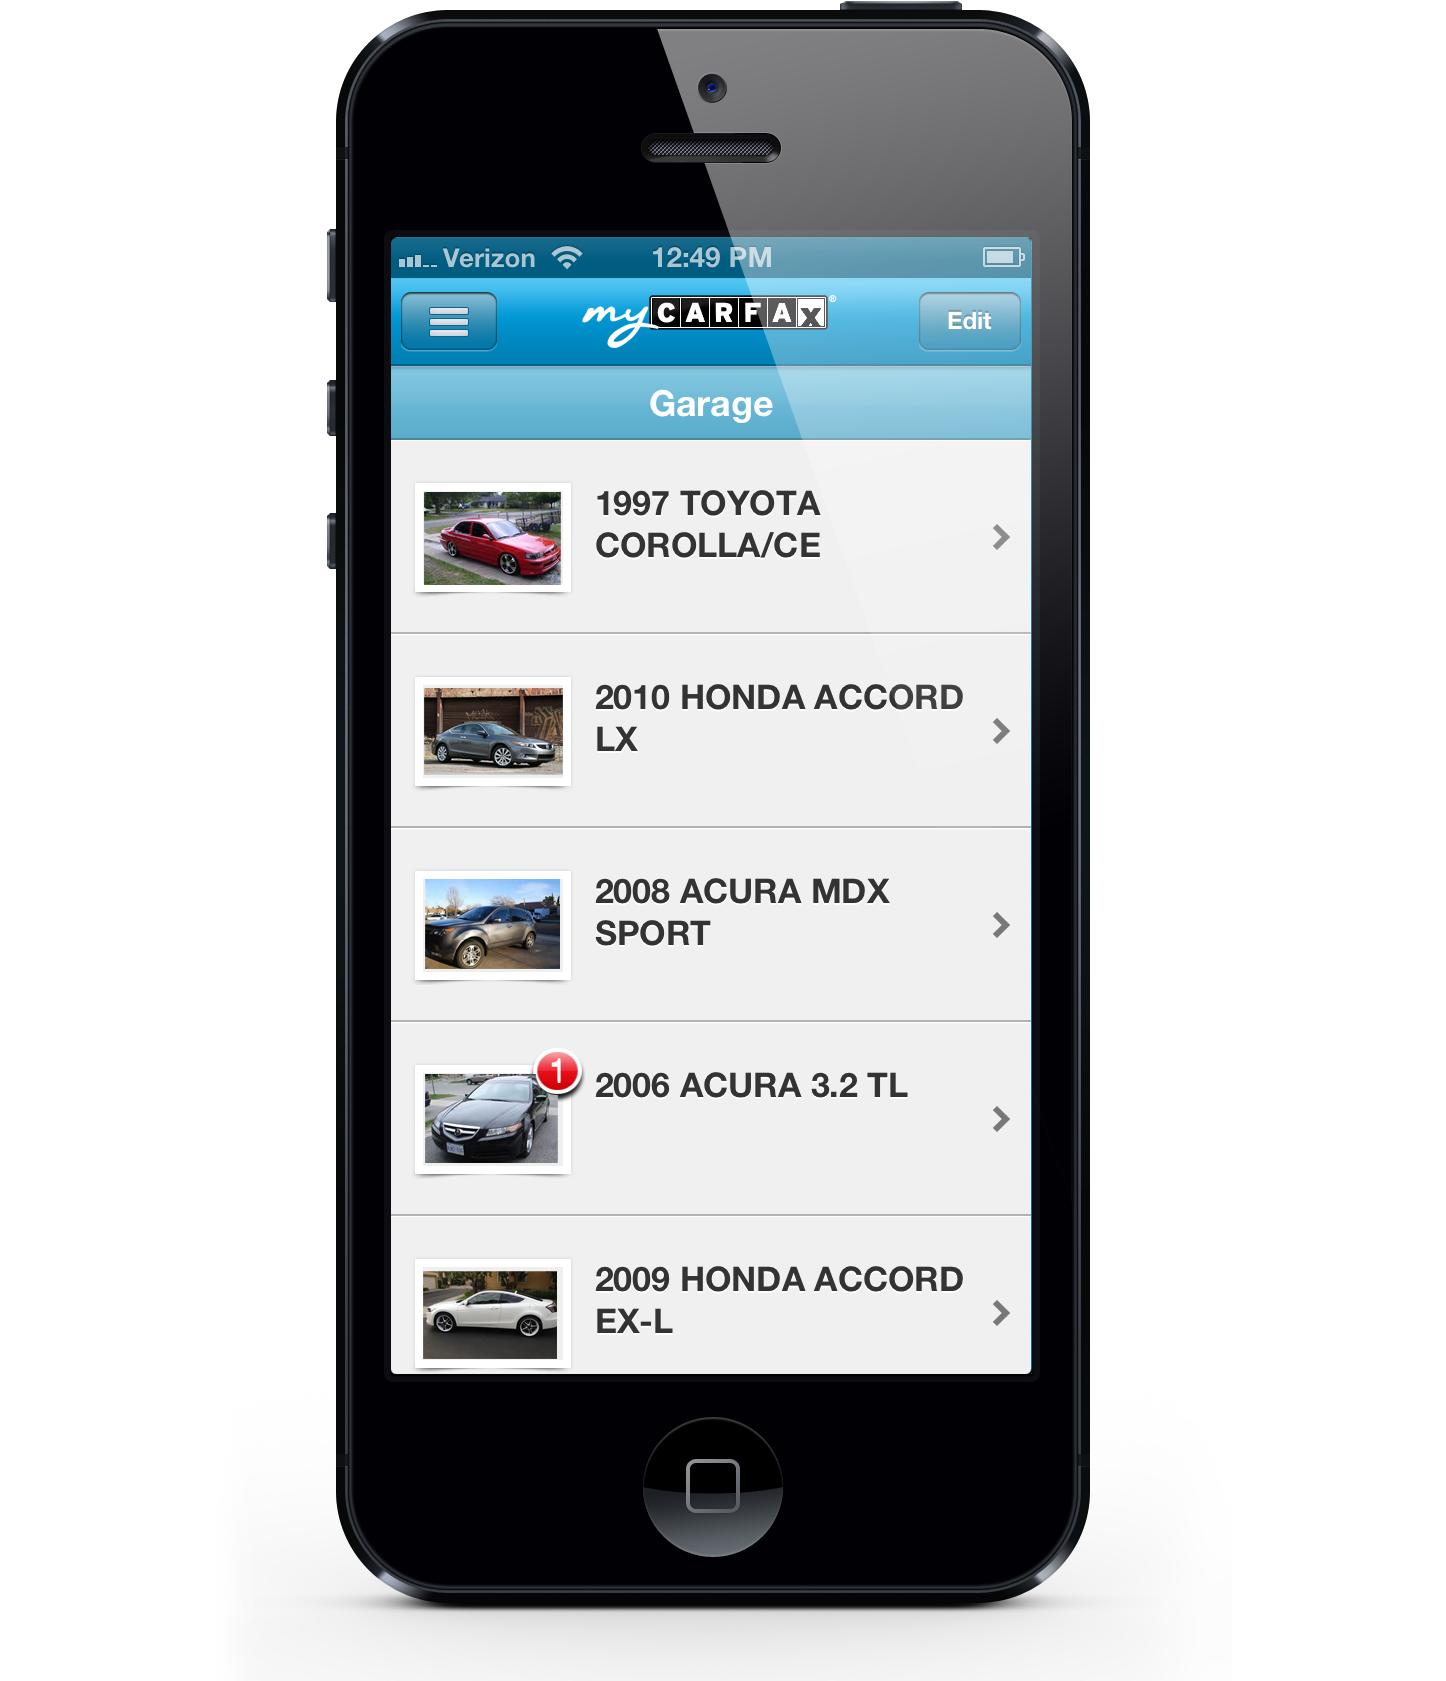 user experience and user interface design for carfax s mobile application mycarfax this application helps consumers manage their vehicle for maintenance